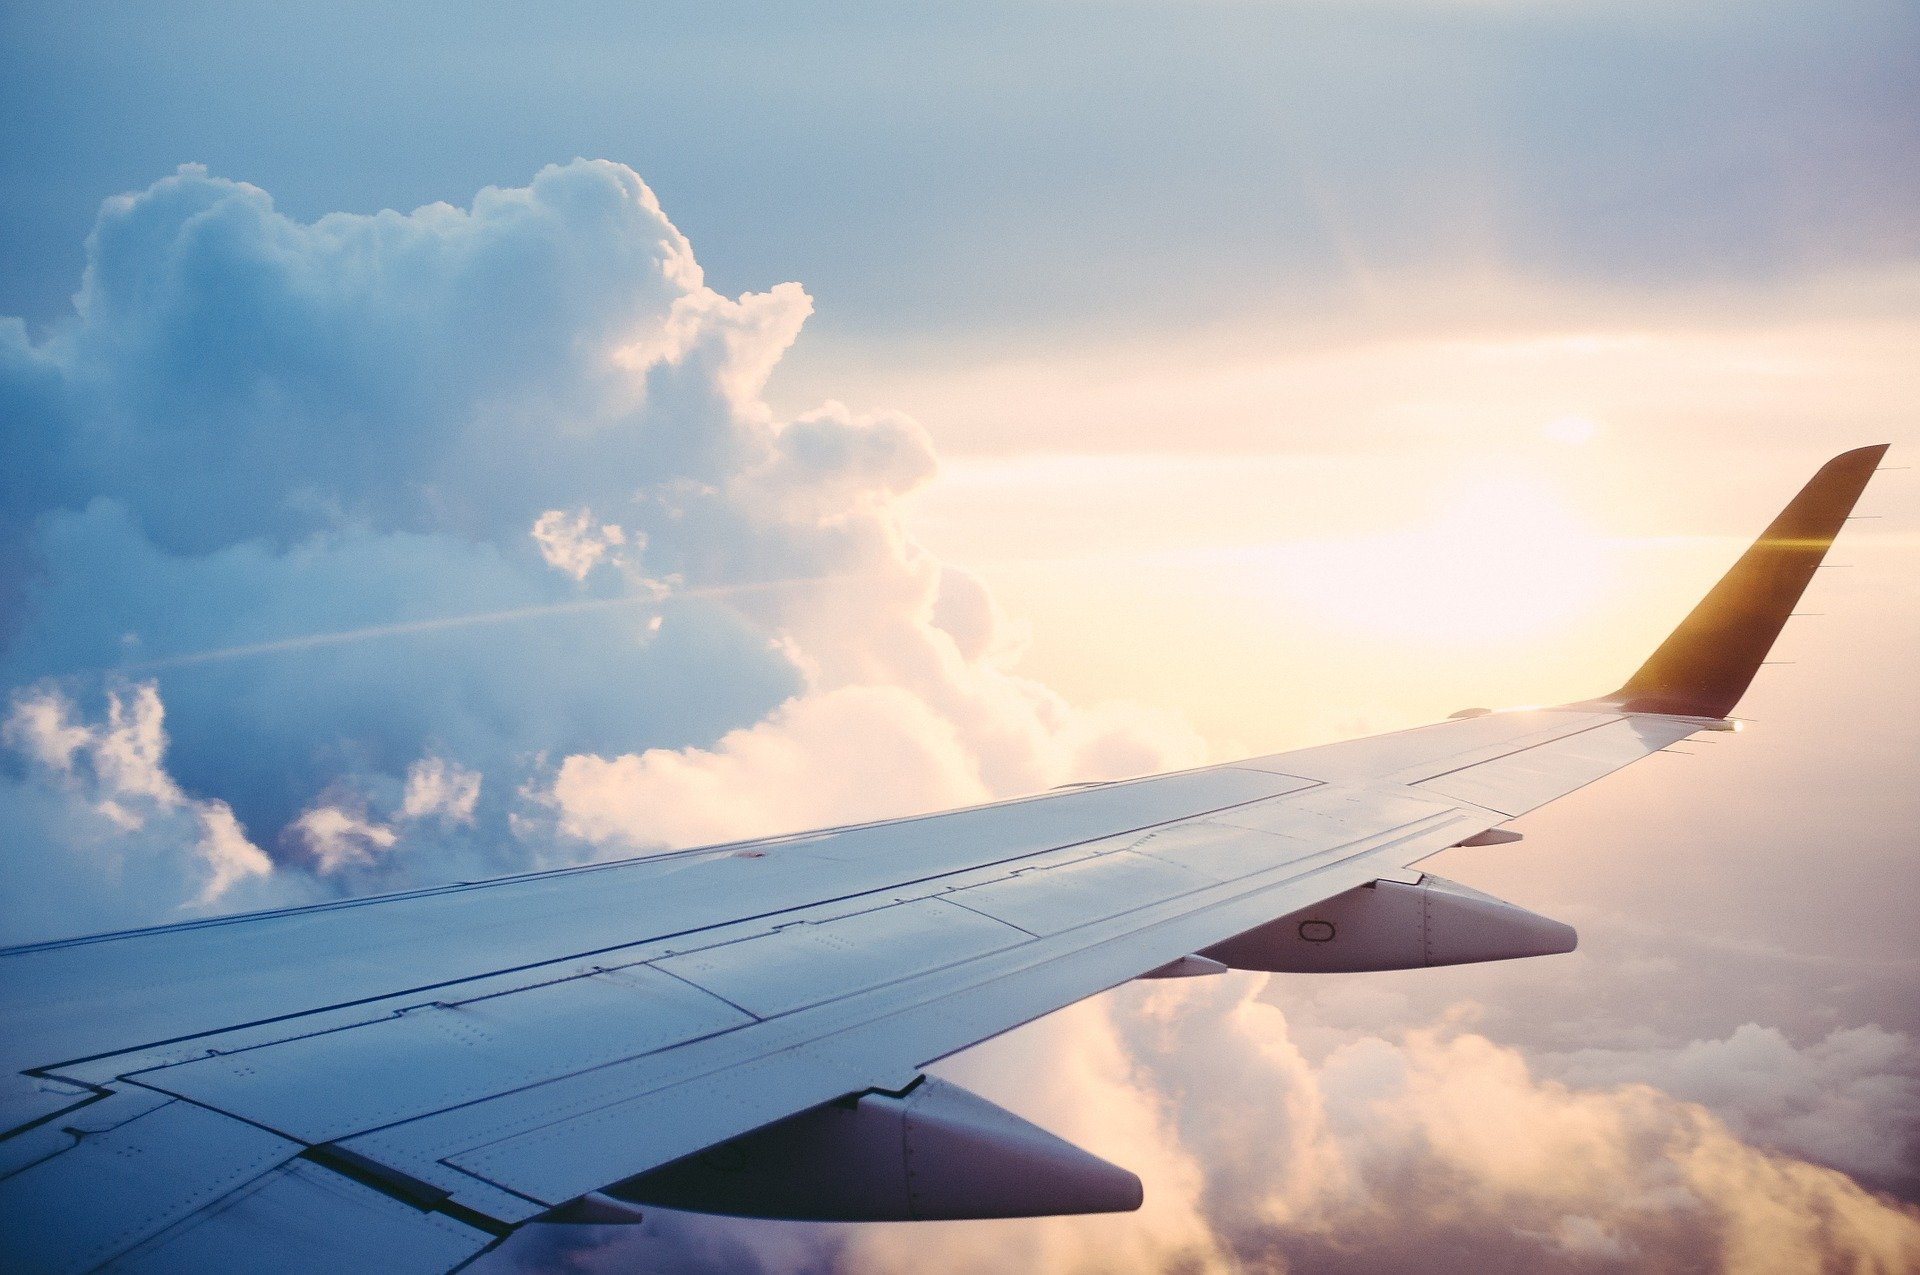 Omnichannel Customer Experience in the Travel Industry During the Pandemic